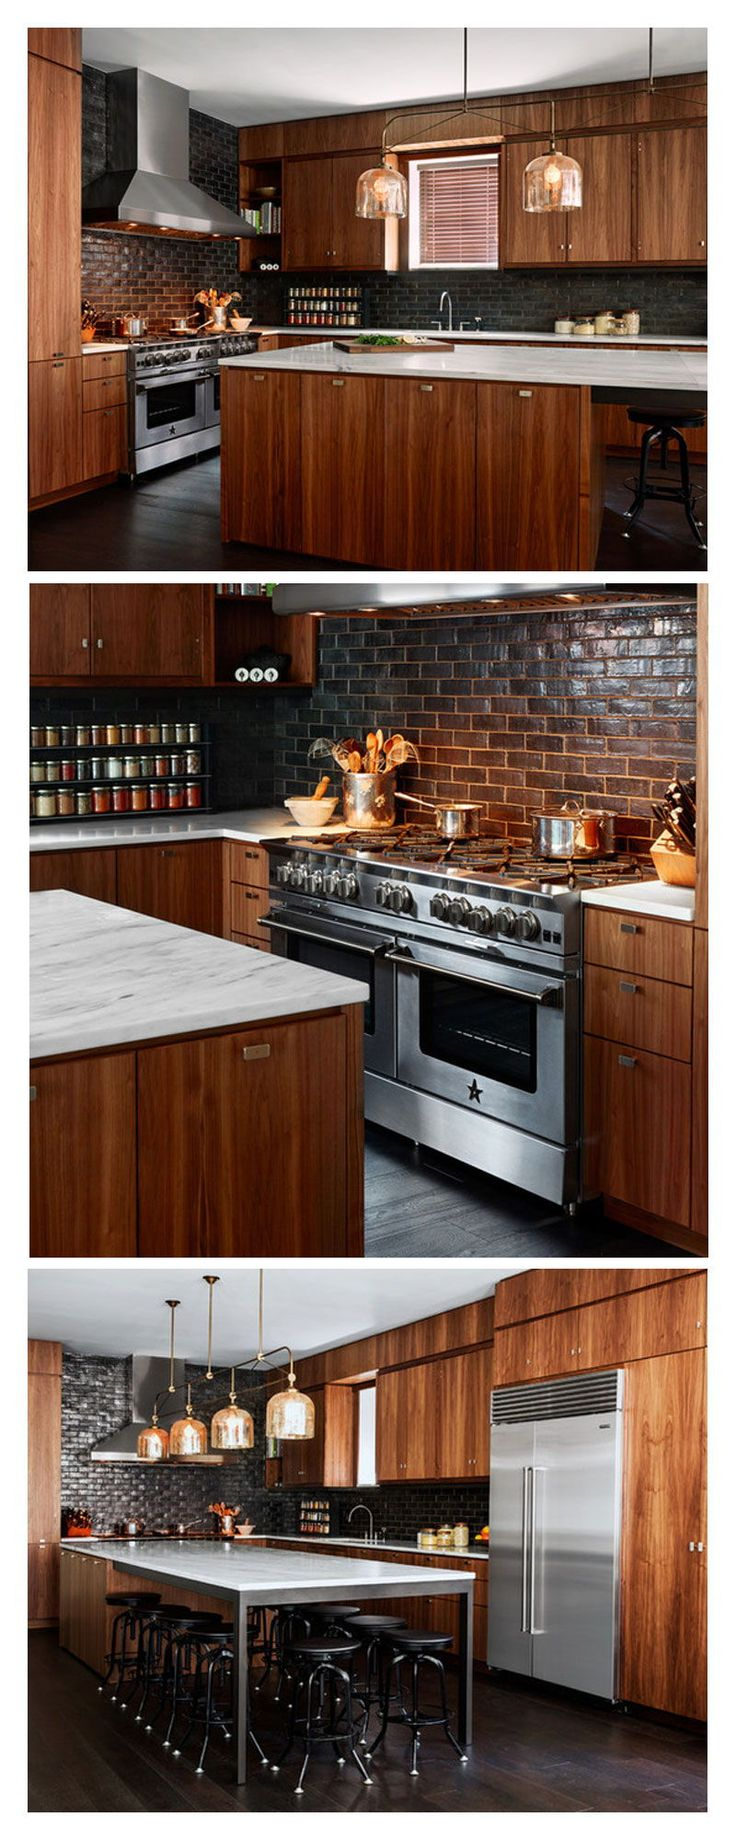 Your new kitchen starts with Bluestar! ❤️ Click to get inspired by handcrafted quality, chef-worthy performance and endless customization options available #kitchen #kitchendesign #kitchendecor #oven